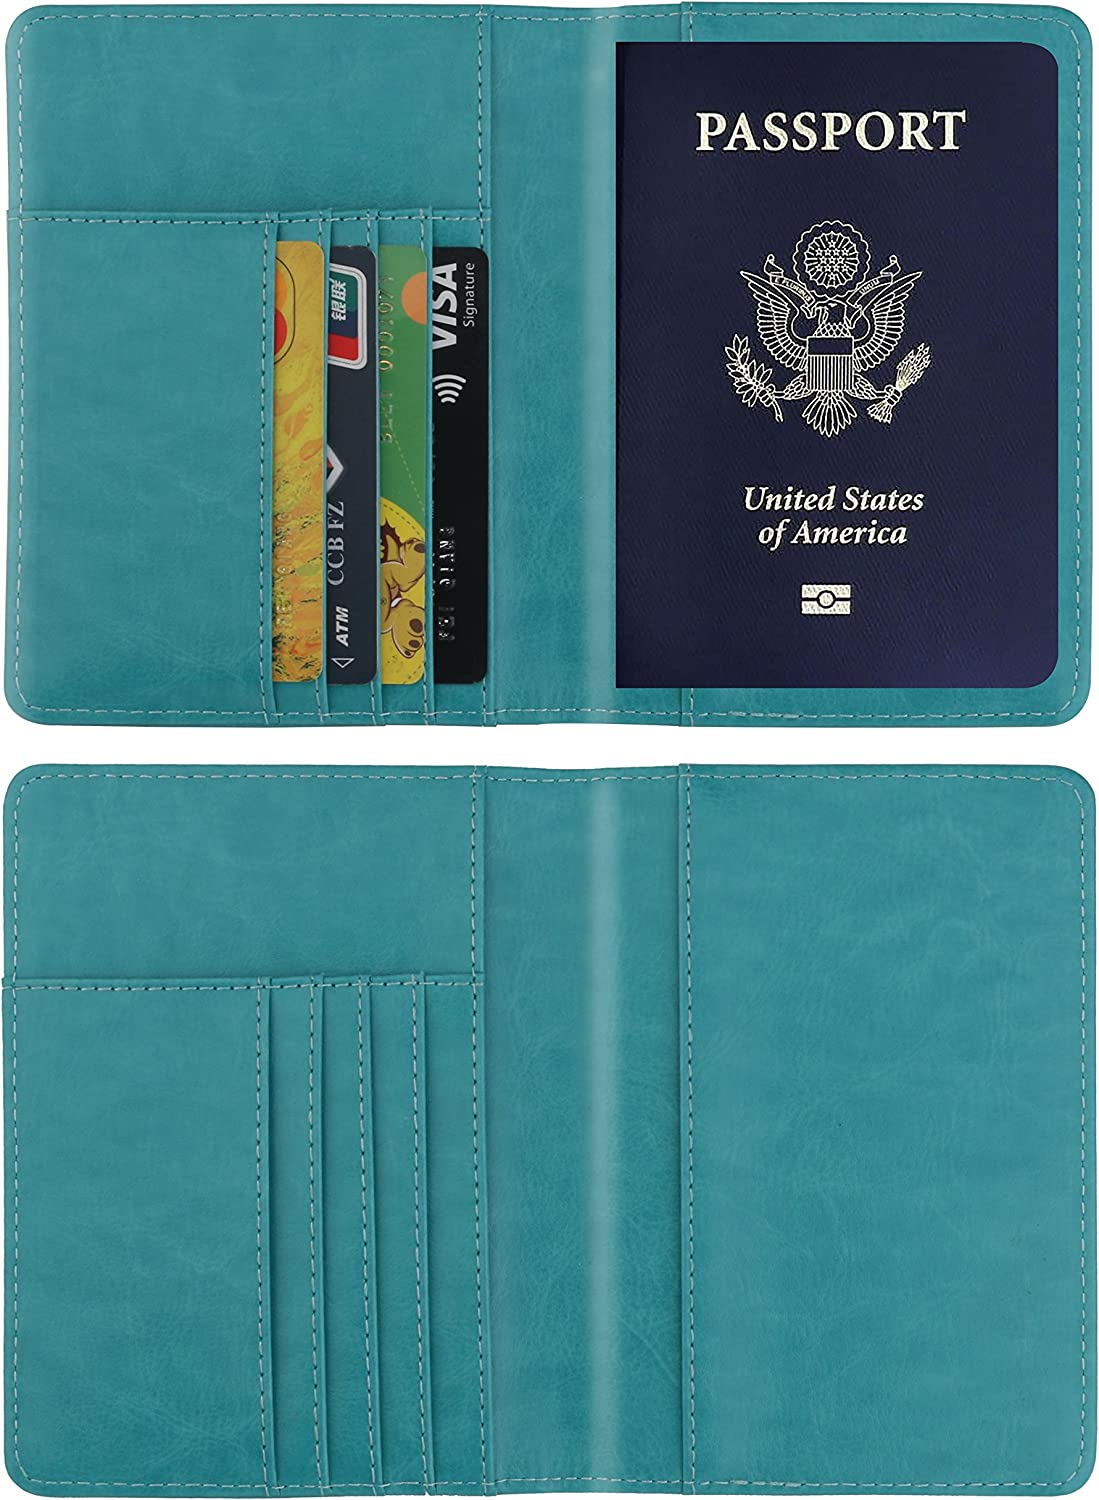 PU Leather Passport ID Card Holder Cover Case RFID Blocking Travel Wallet for Men Women